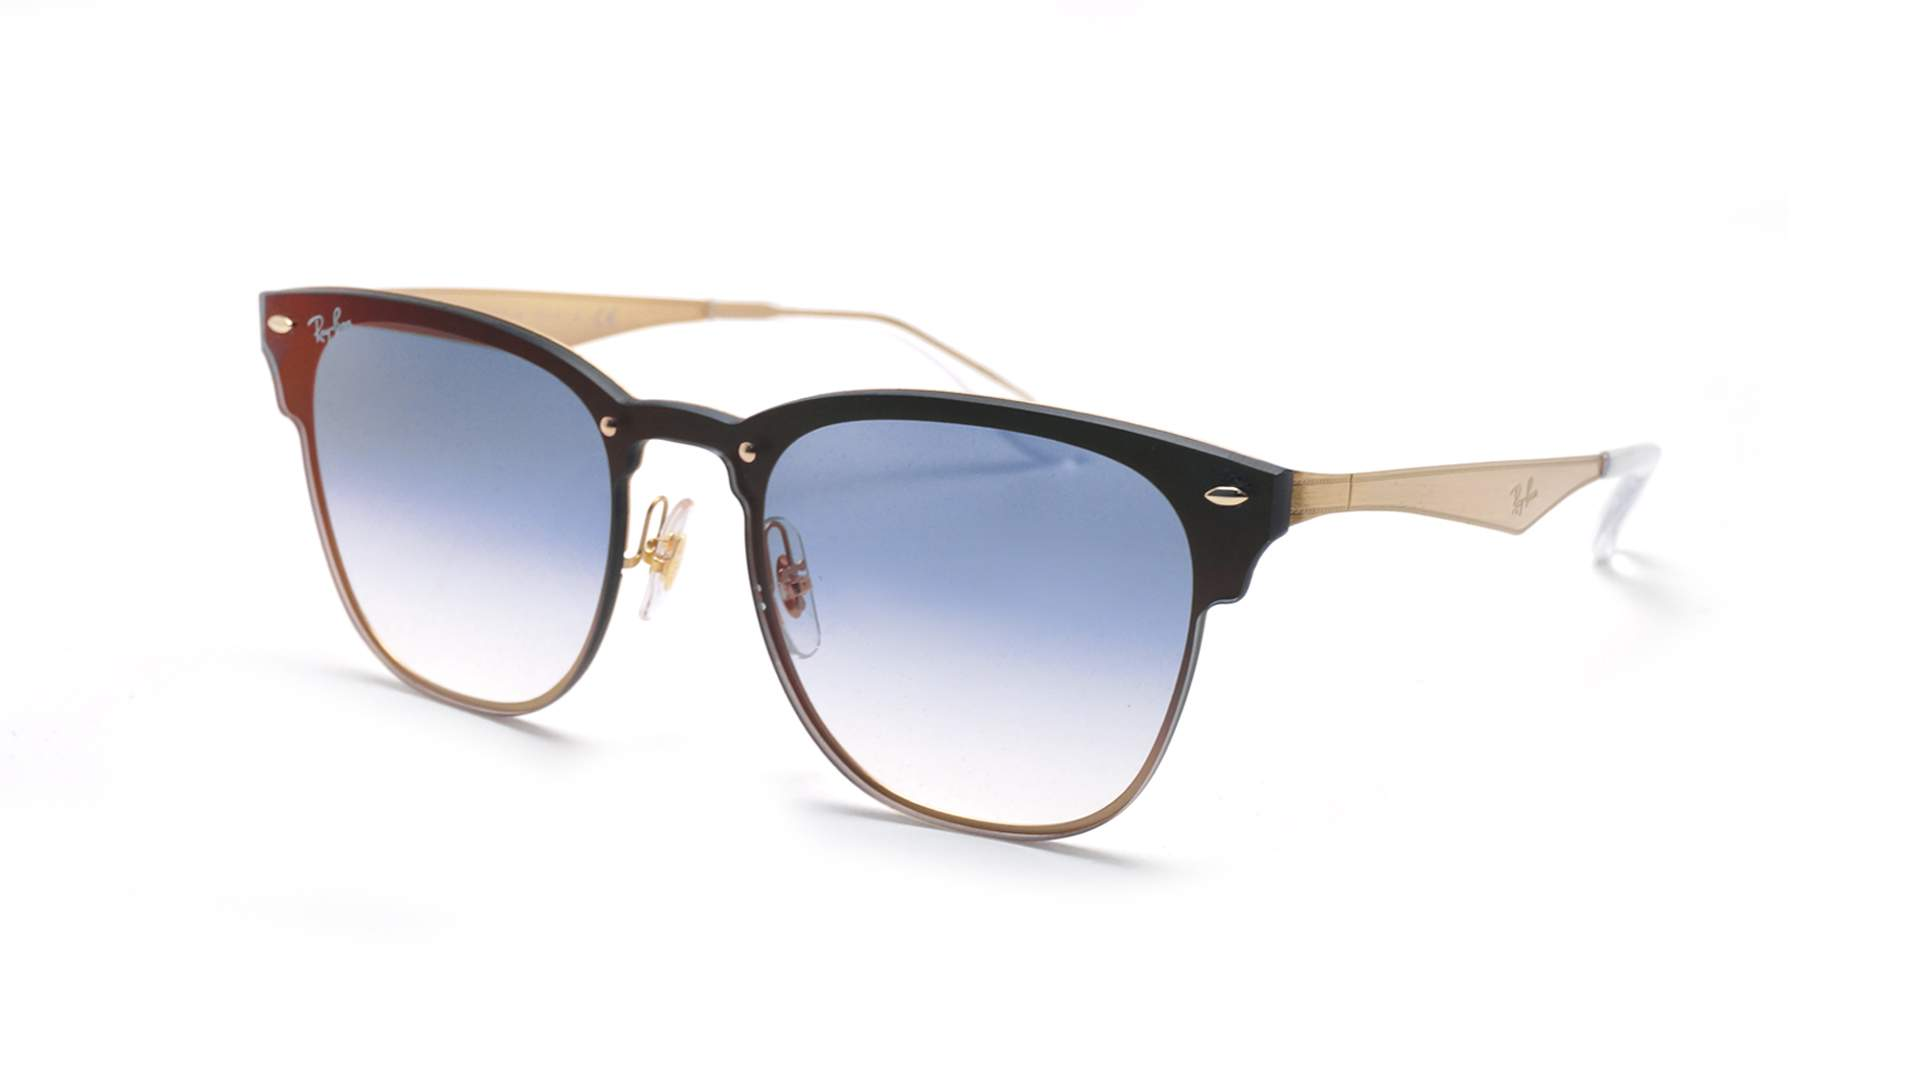 3a9ce1be117 Sunglasses Ray-Ban Clubmaster Blaze Gold RB3576N 043 X0 Medium